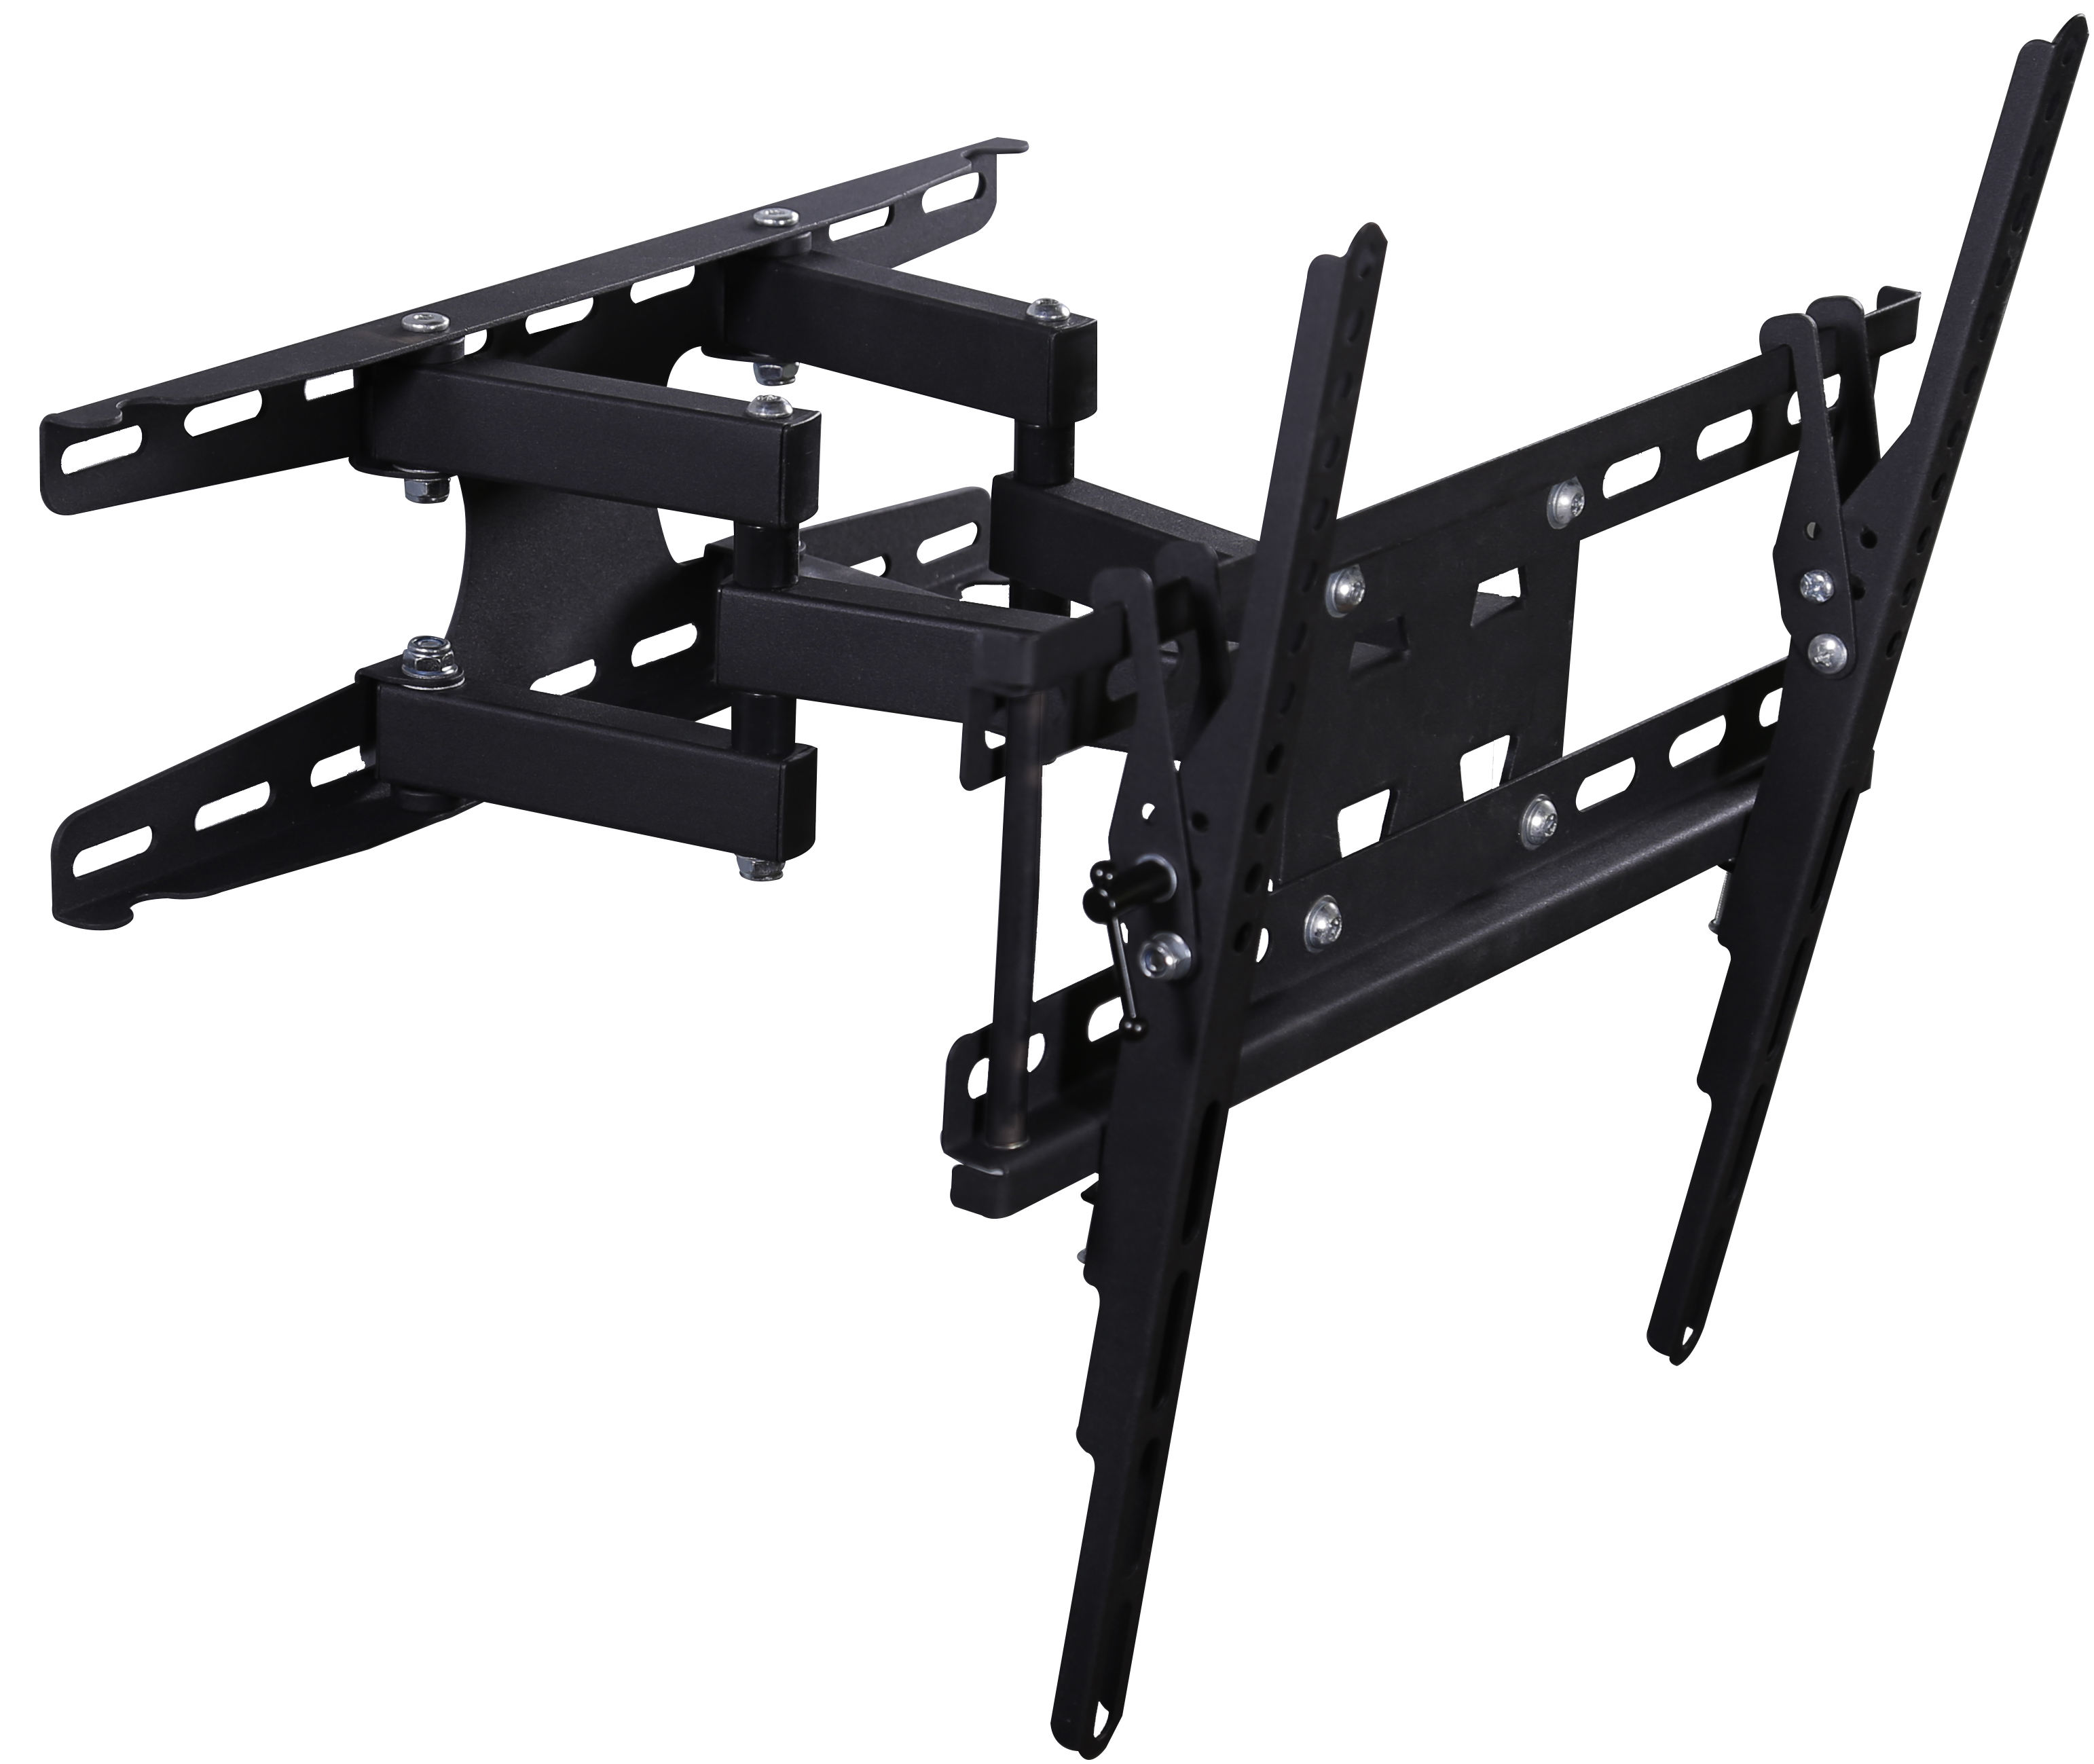 "Swivel TV Mount Bracket, 32""37"" 39"" 42"" 45"" 48"" 50"" 55"" 60"" VESA 400x400 Full Motion Tilt TV Wall Mount Bracket/"